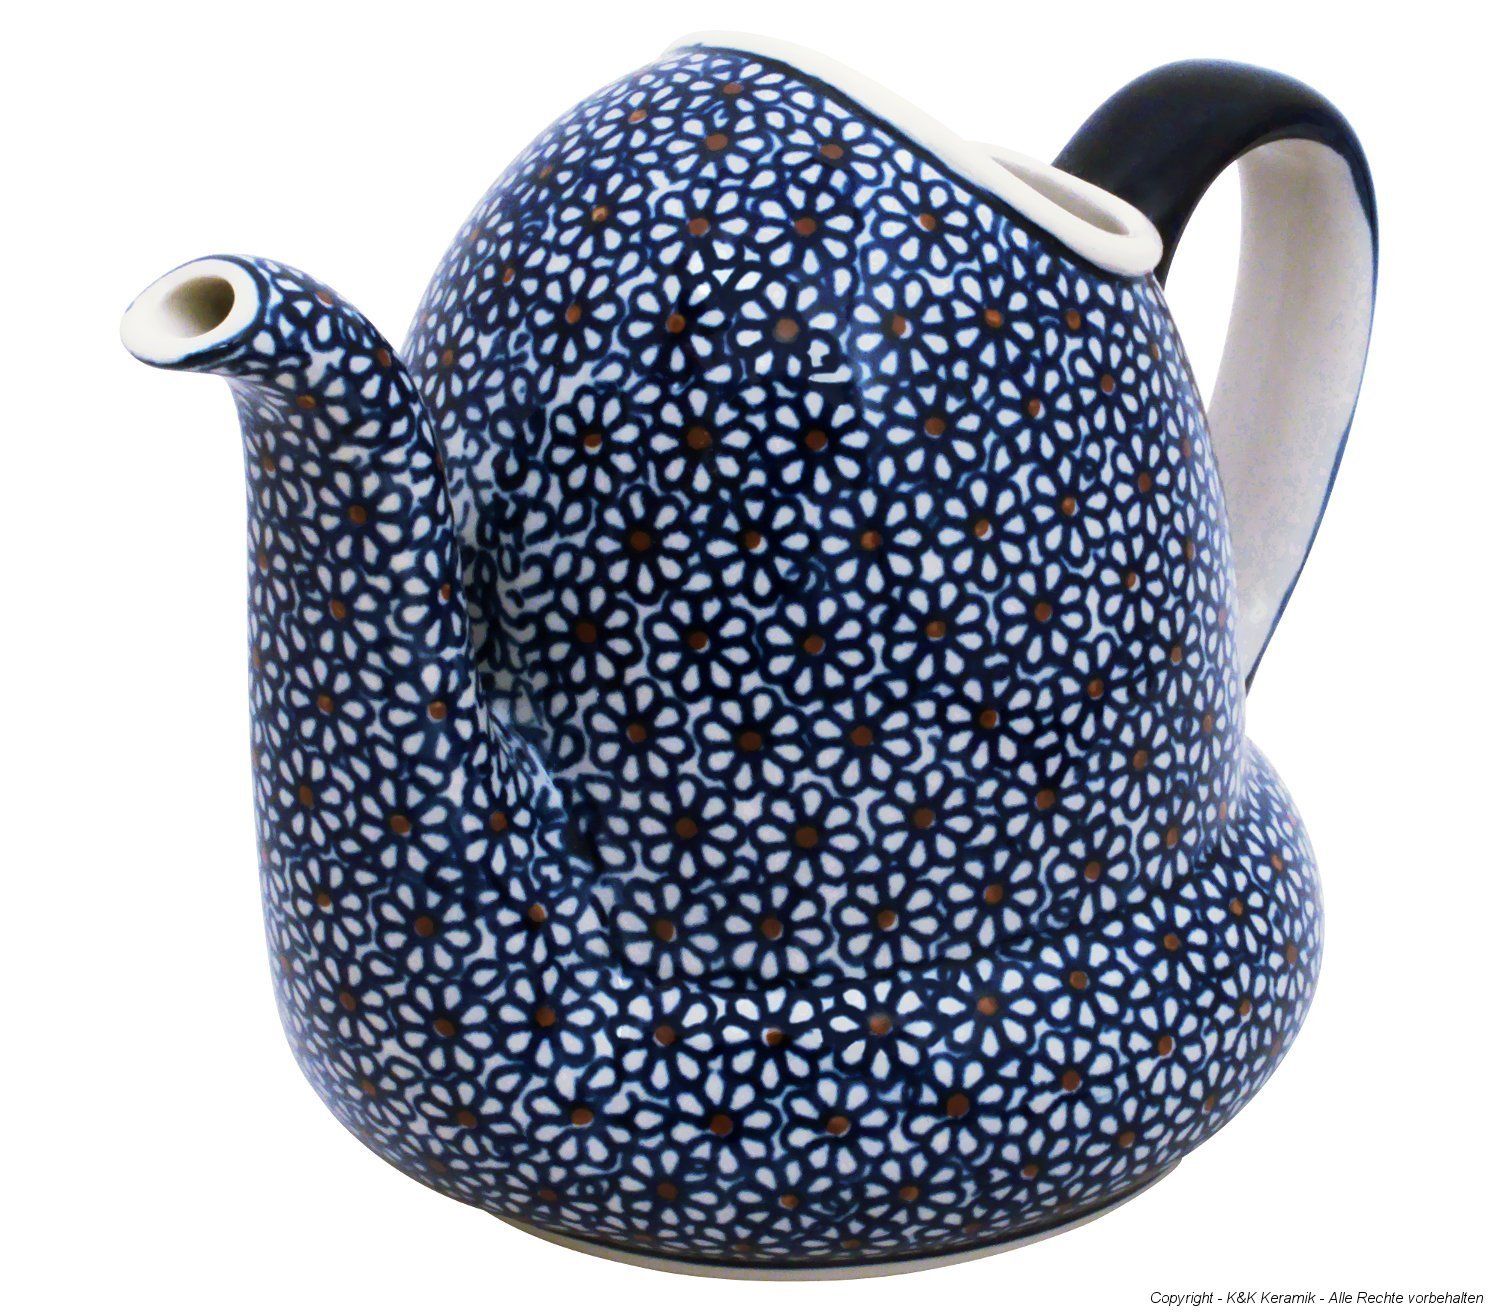 Bunzlauer Keramik Ceramic Watering Can V = 1.0 L in the decor 120